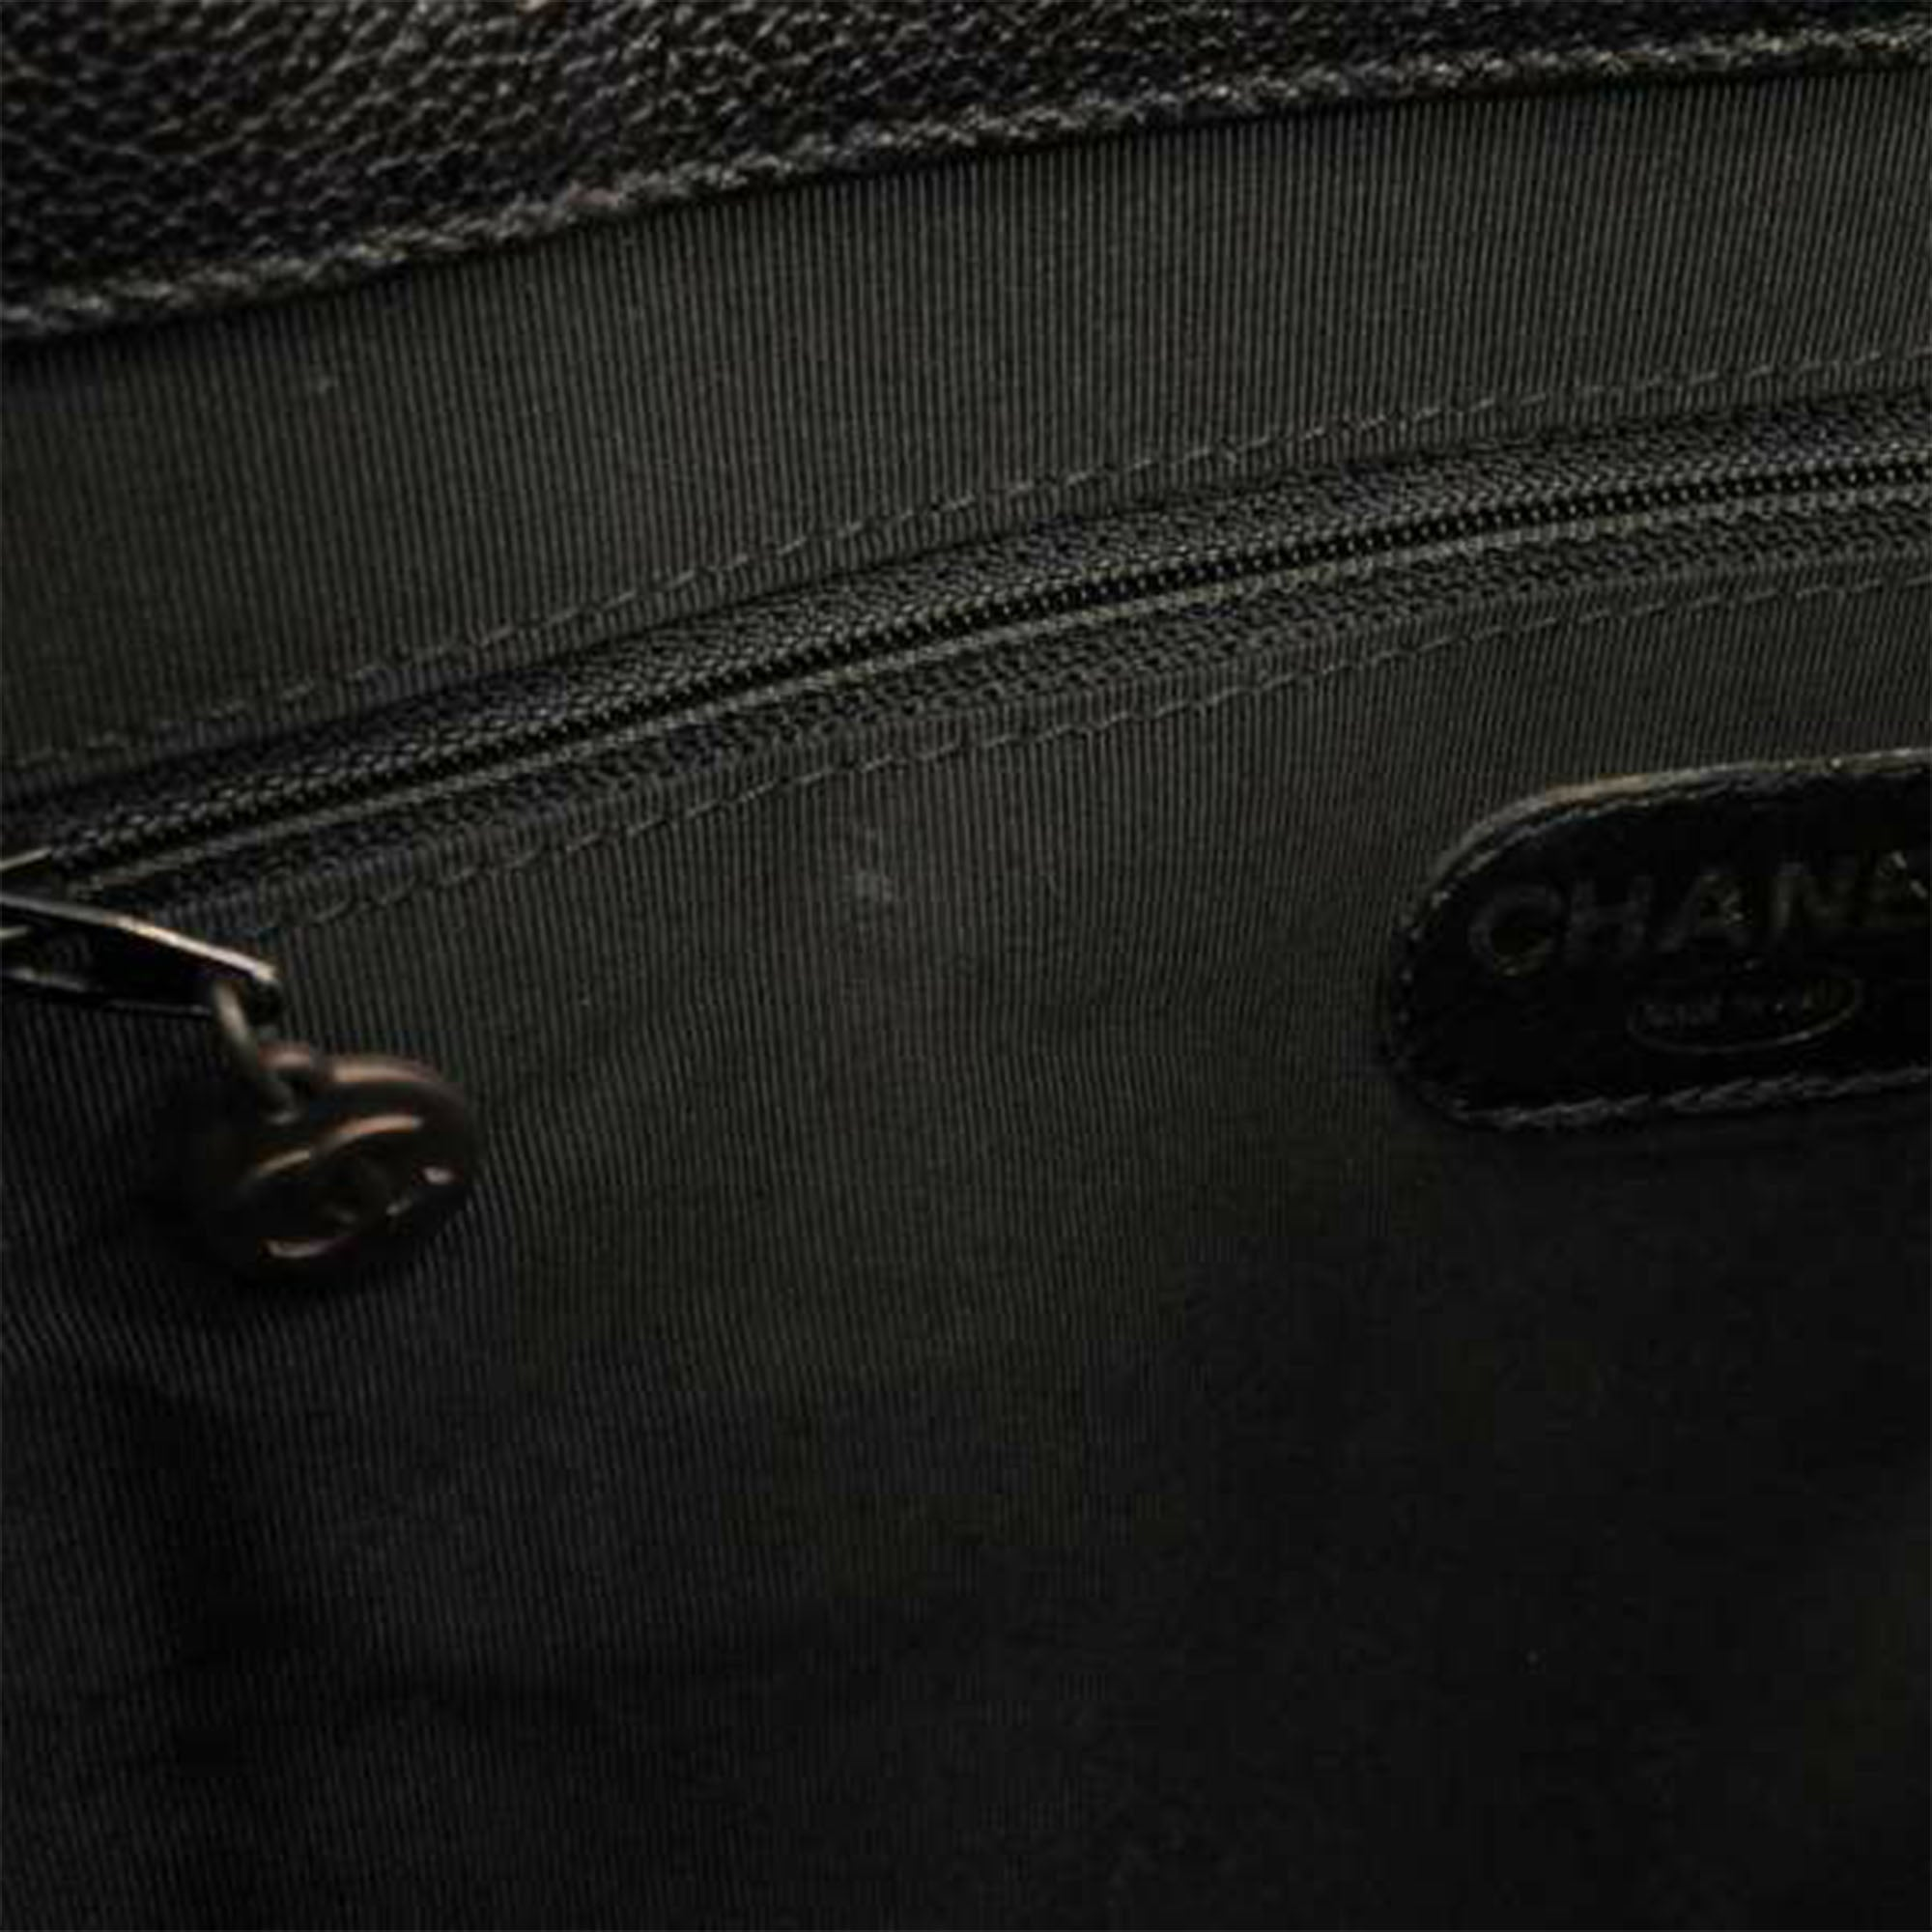 Chanel Black Caviar Leather Tote Bag